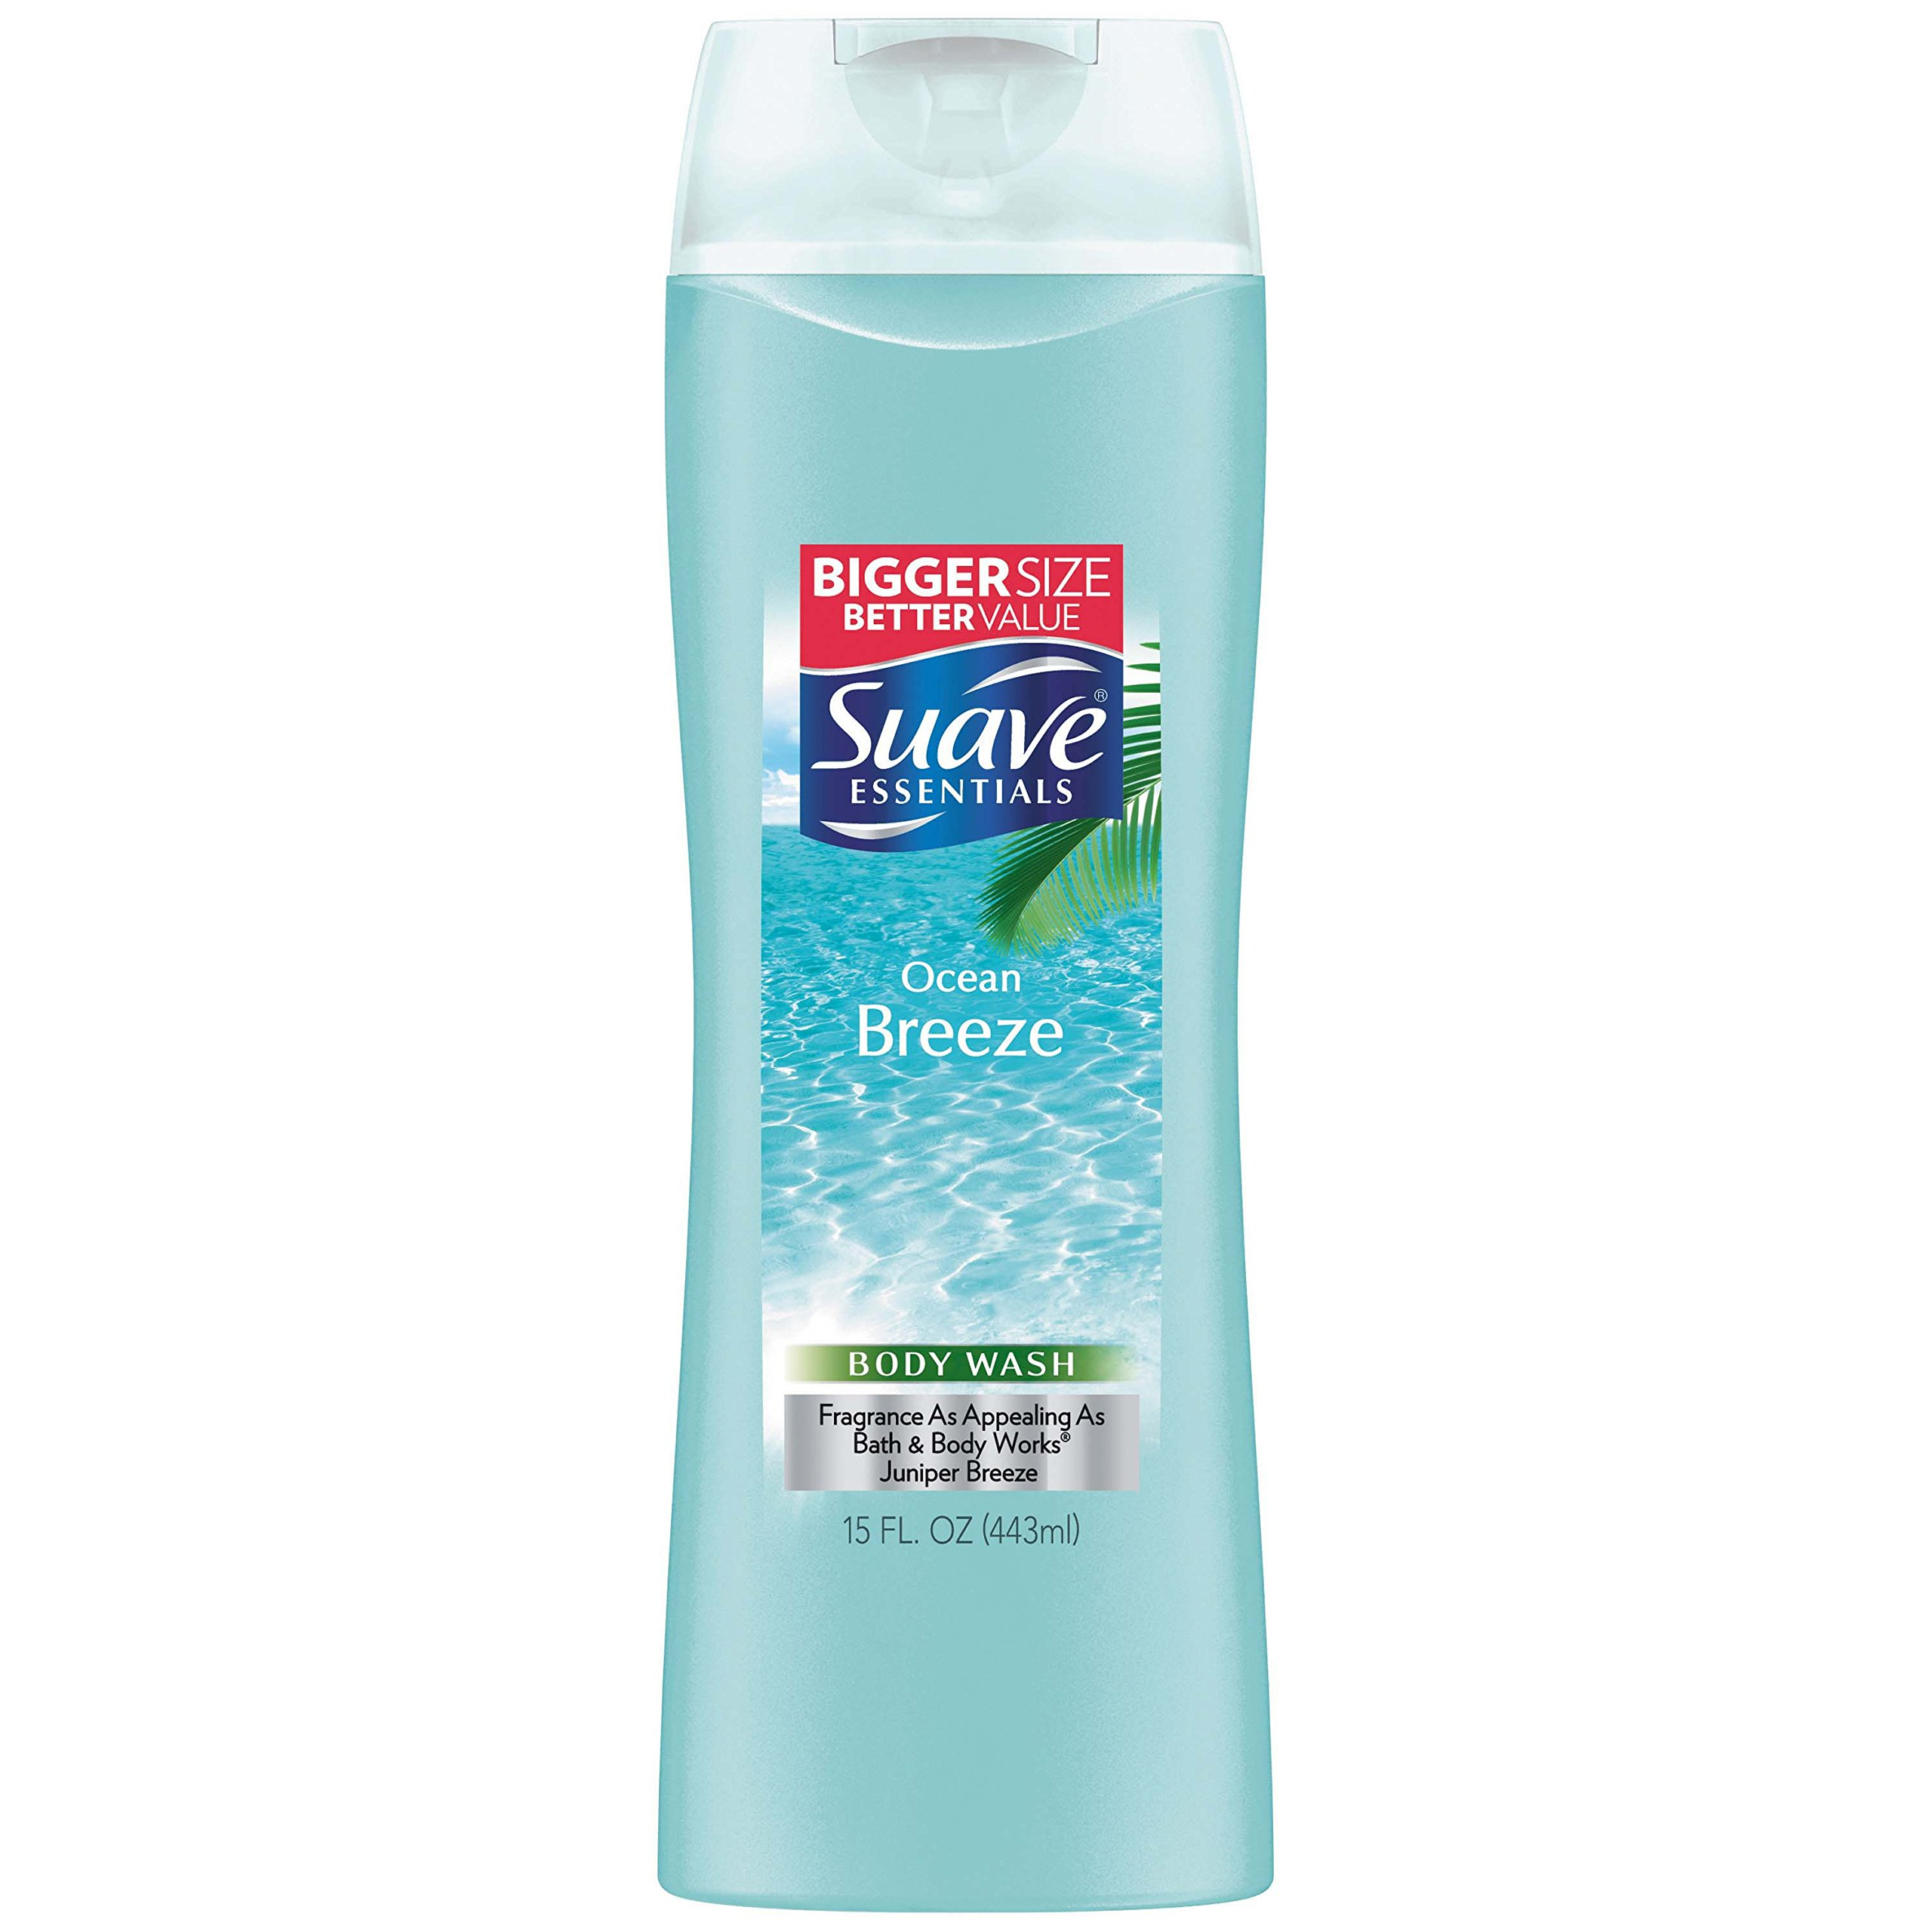 Suave Essentials Body Wash, Ocean Breeze 15 oz (Pack of 6)